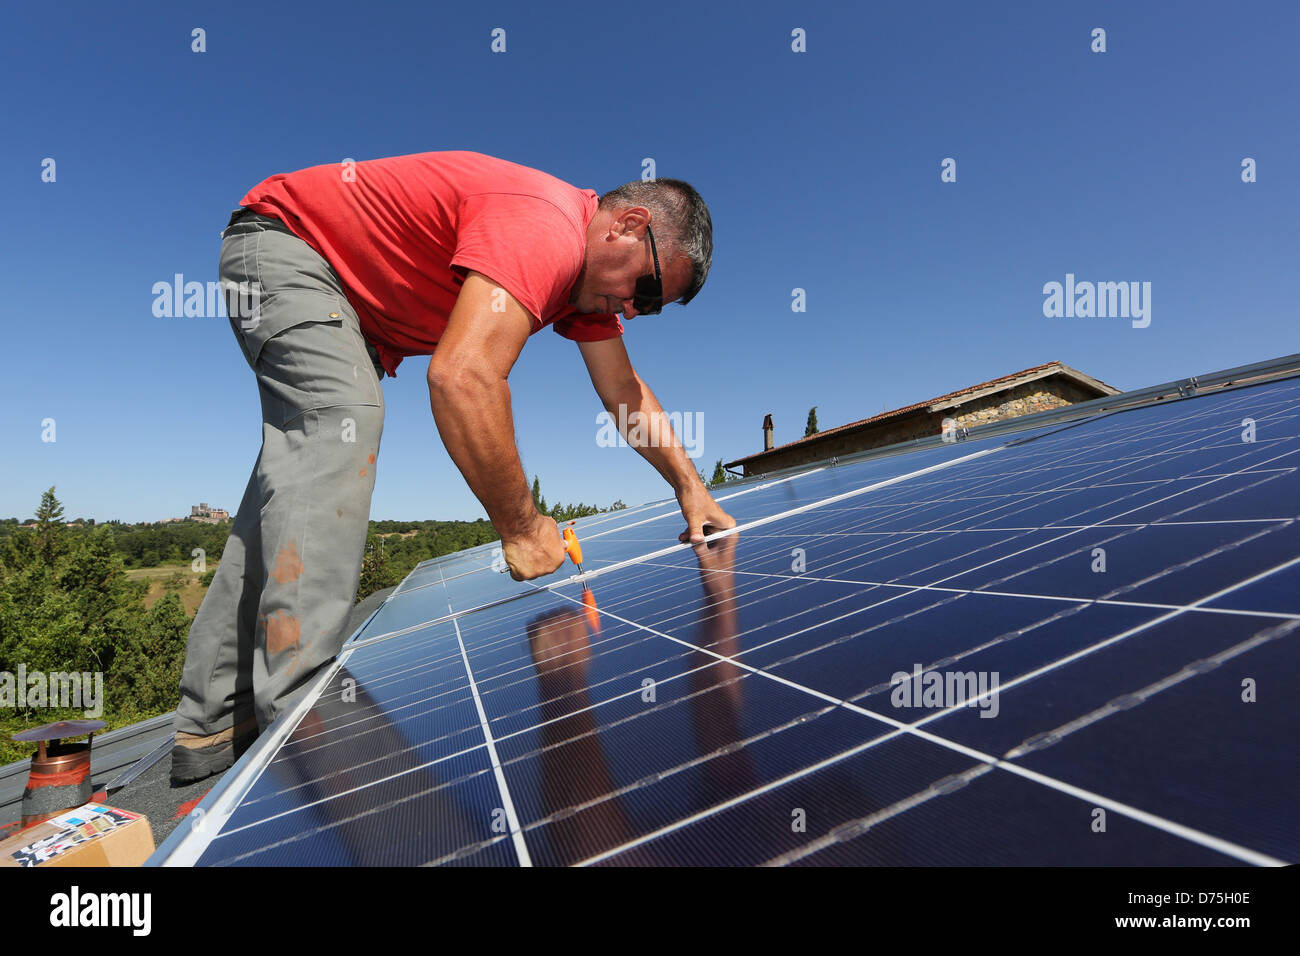 Torre Alfina, Italy, installing a solar power system on the roof of a detached house - Stock Image